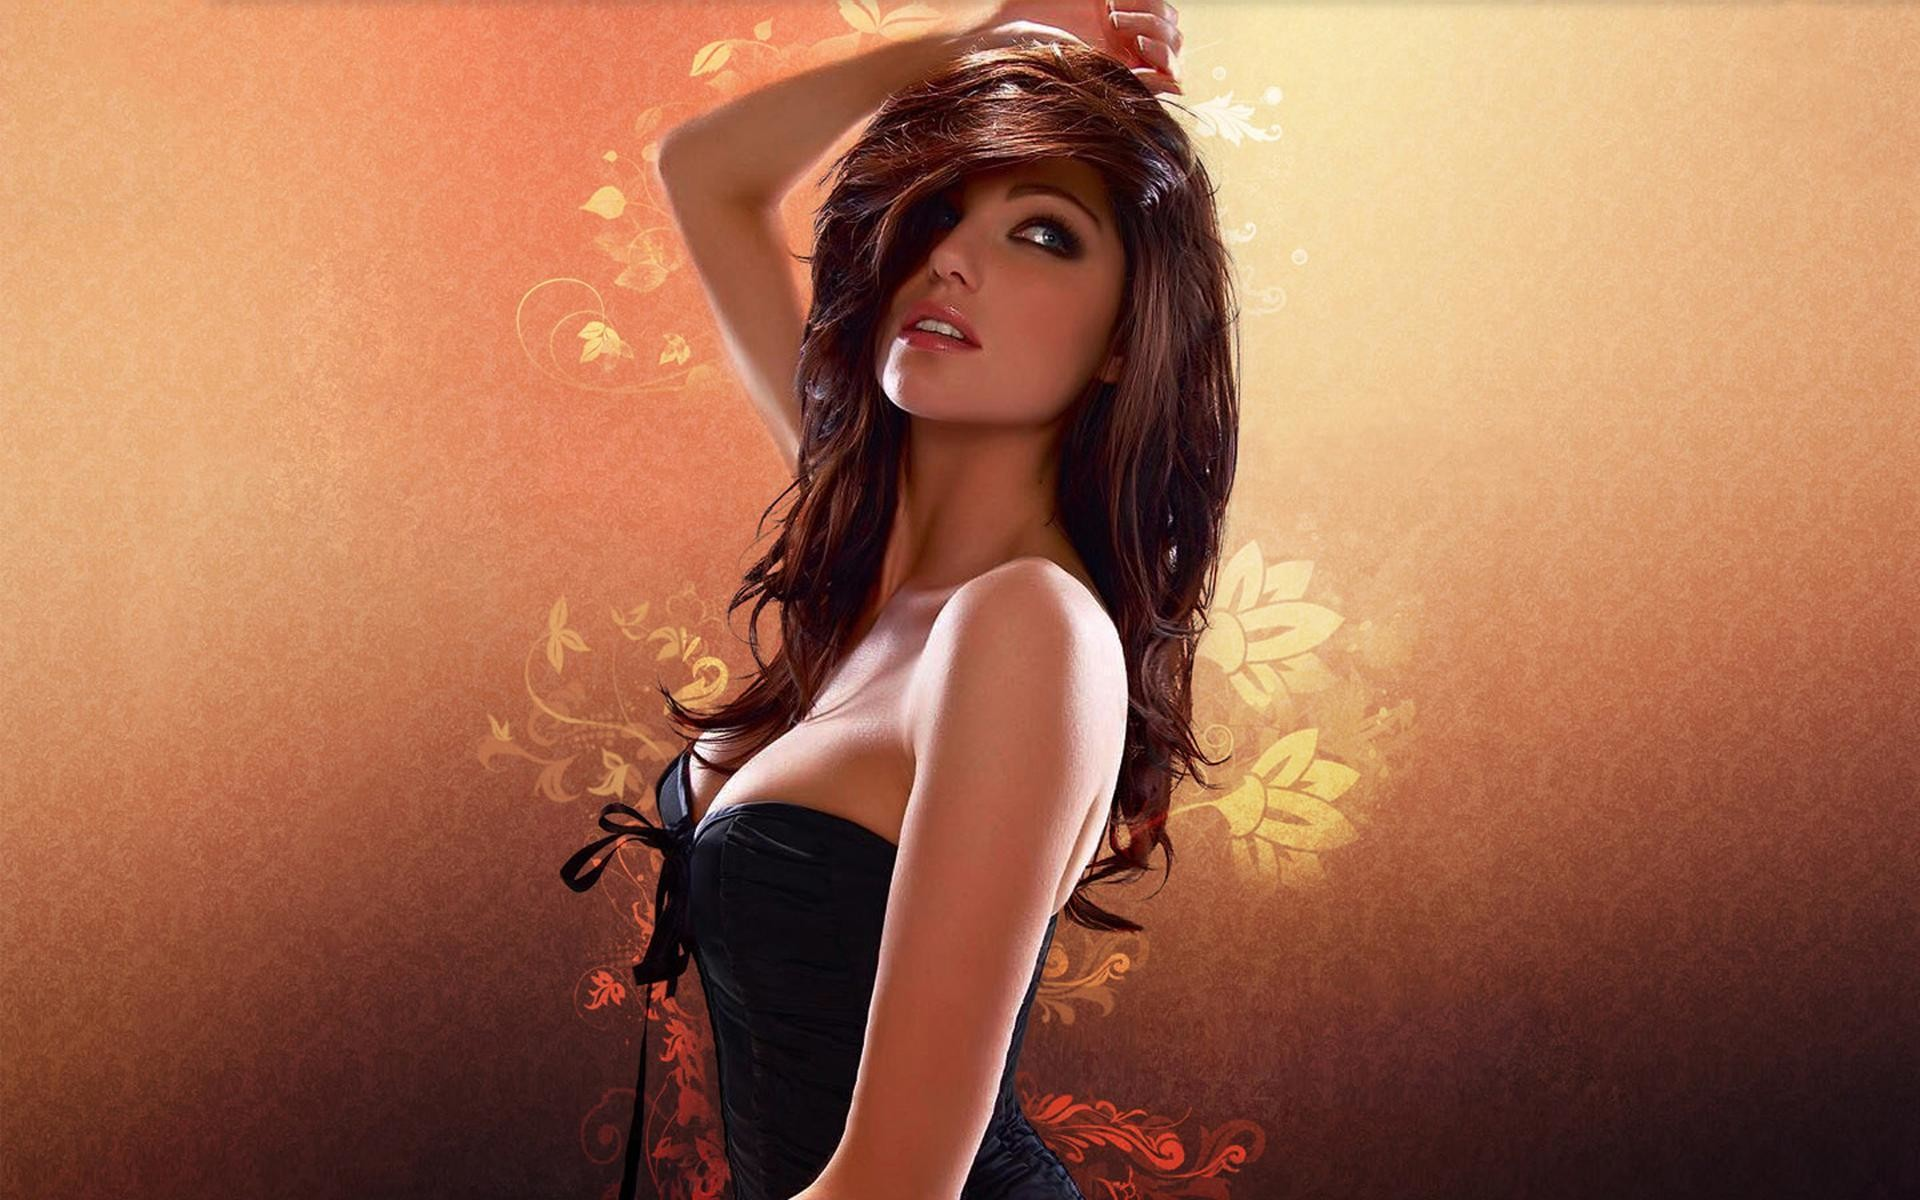 Cool Girl Hd Wallpapers 1920×1200 Best Wallpapers For Girls (60 Wallpapers)  |